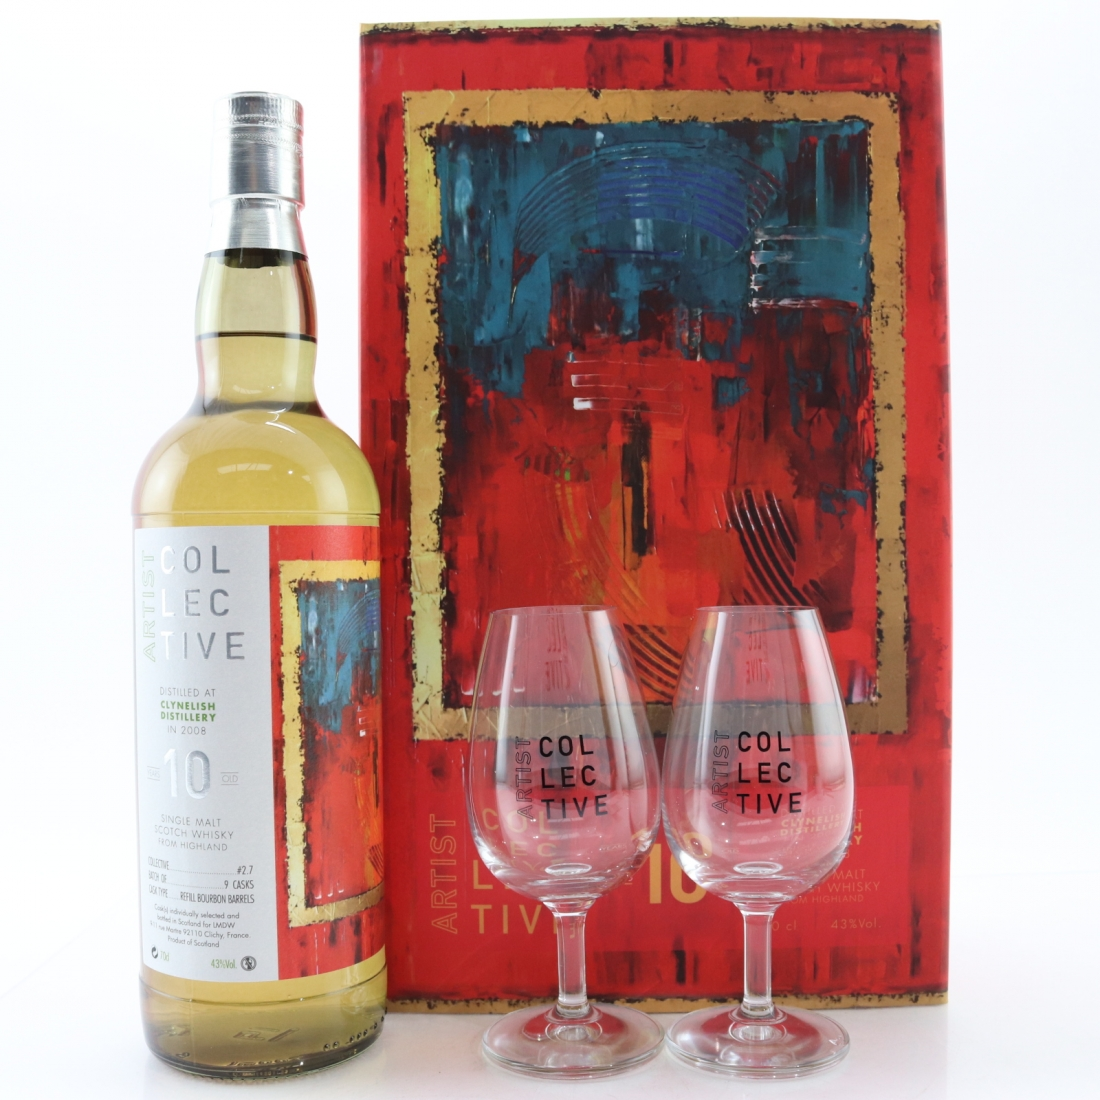 Clynelish 2008 Artist Colective 10 Year Old Gift Pack / including Glass